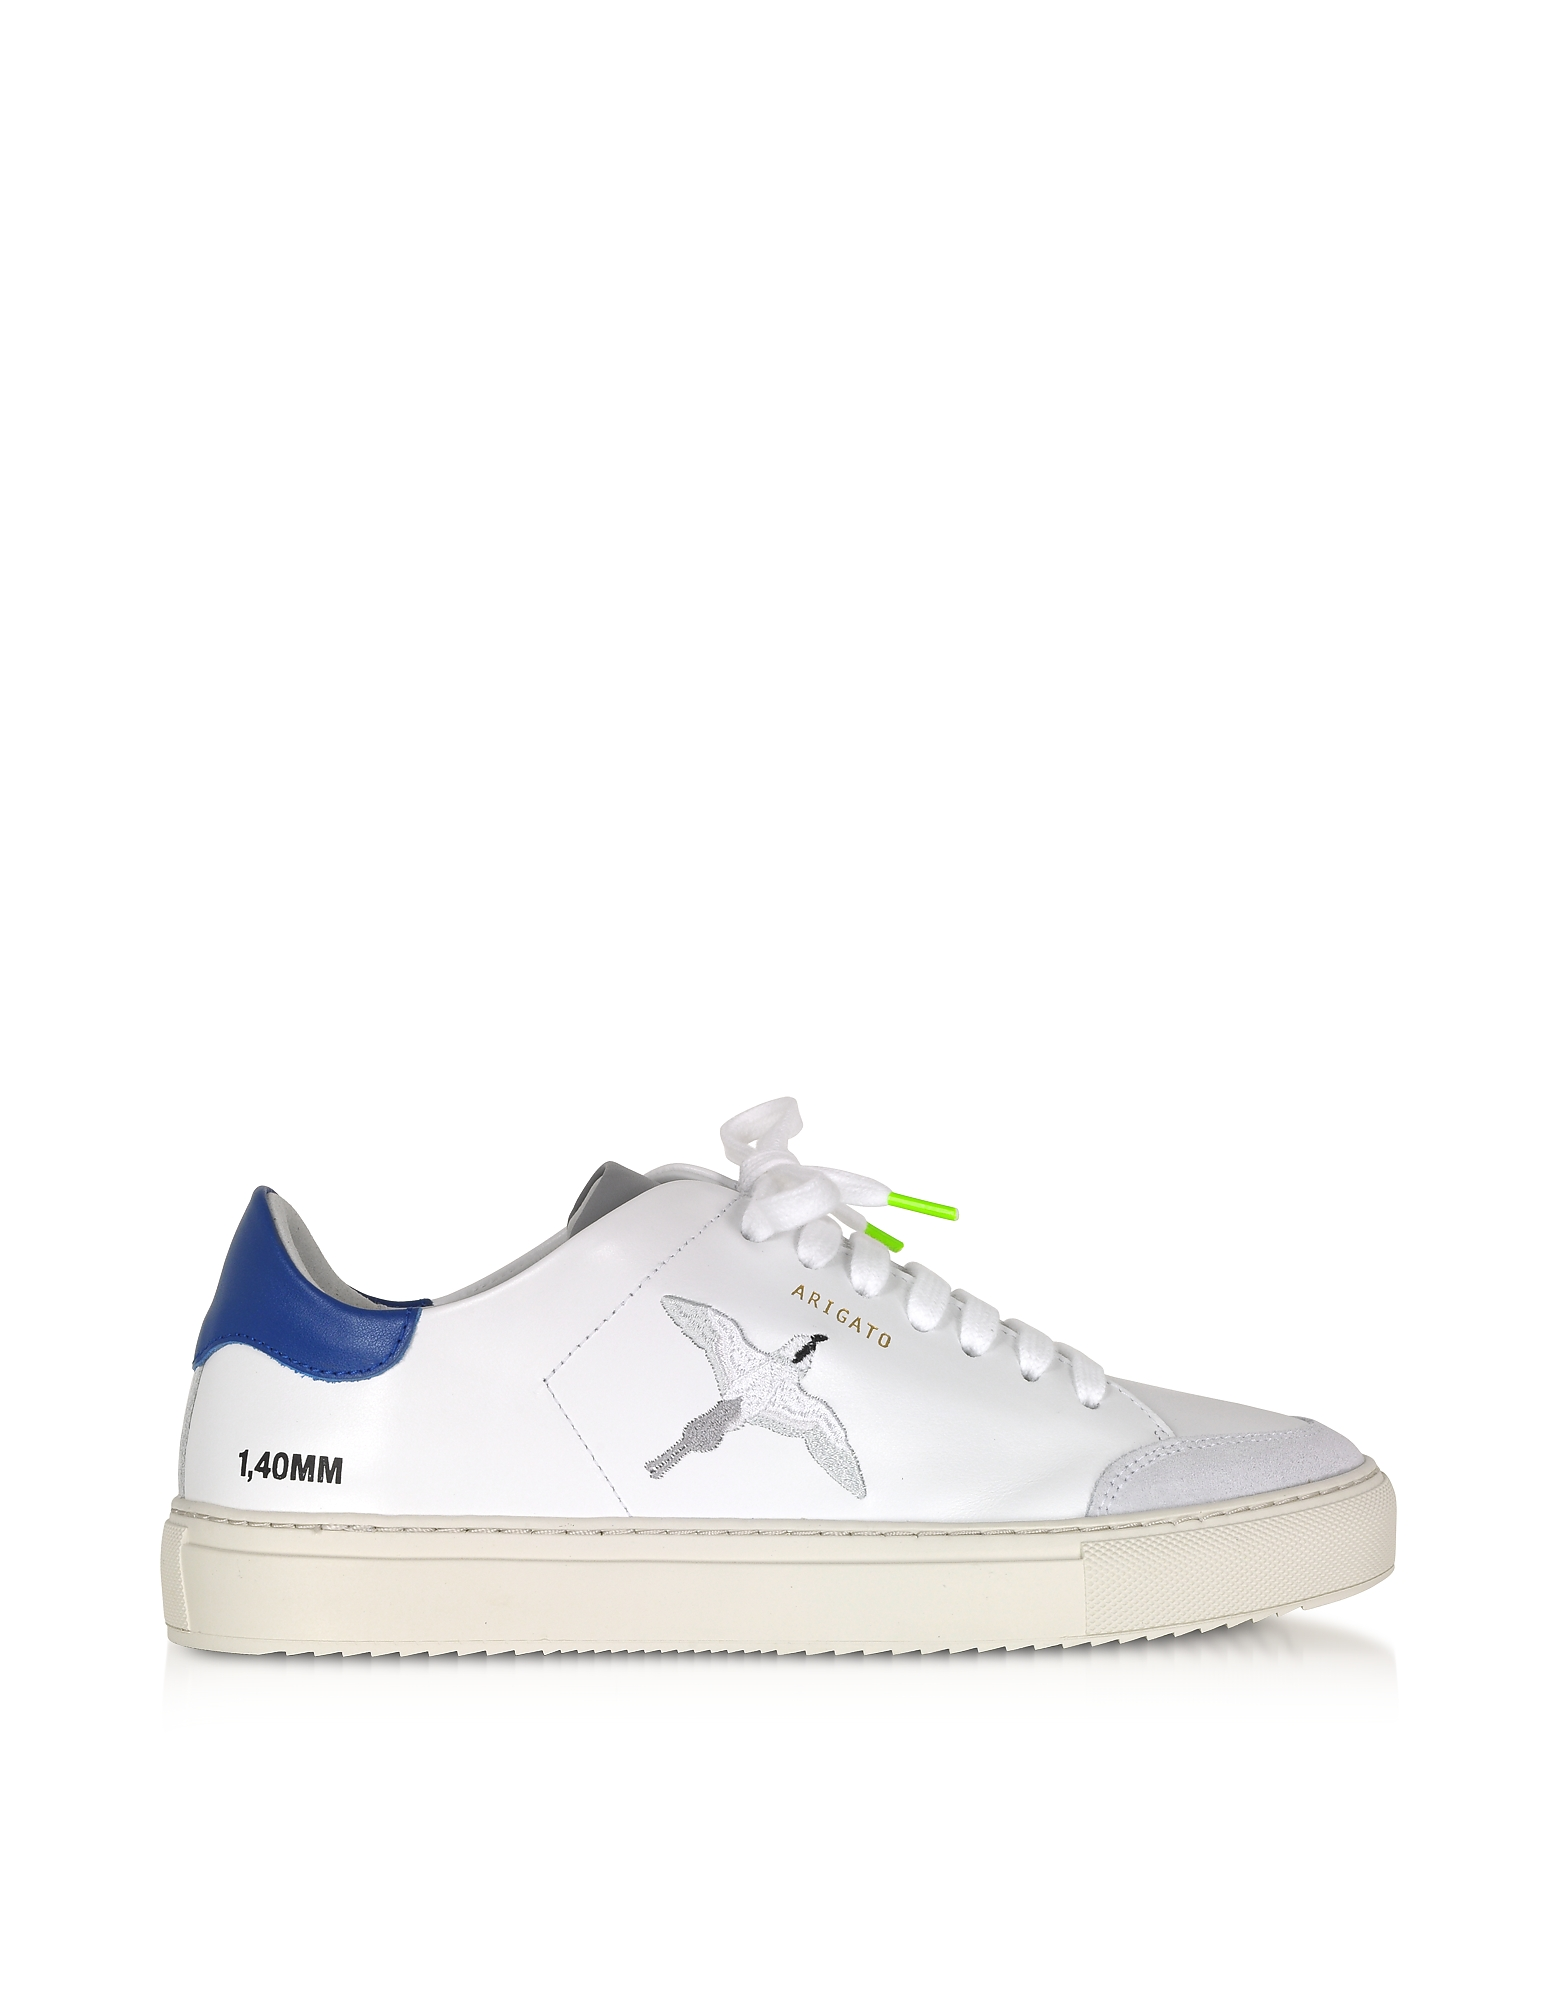 Axel Arigato Designer Shoes, Clean 90 Triple Bird White, Cobalt Blue, Grey Leather Men's Sneakers